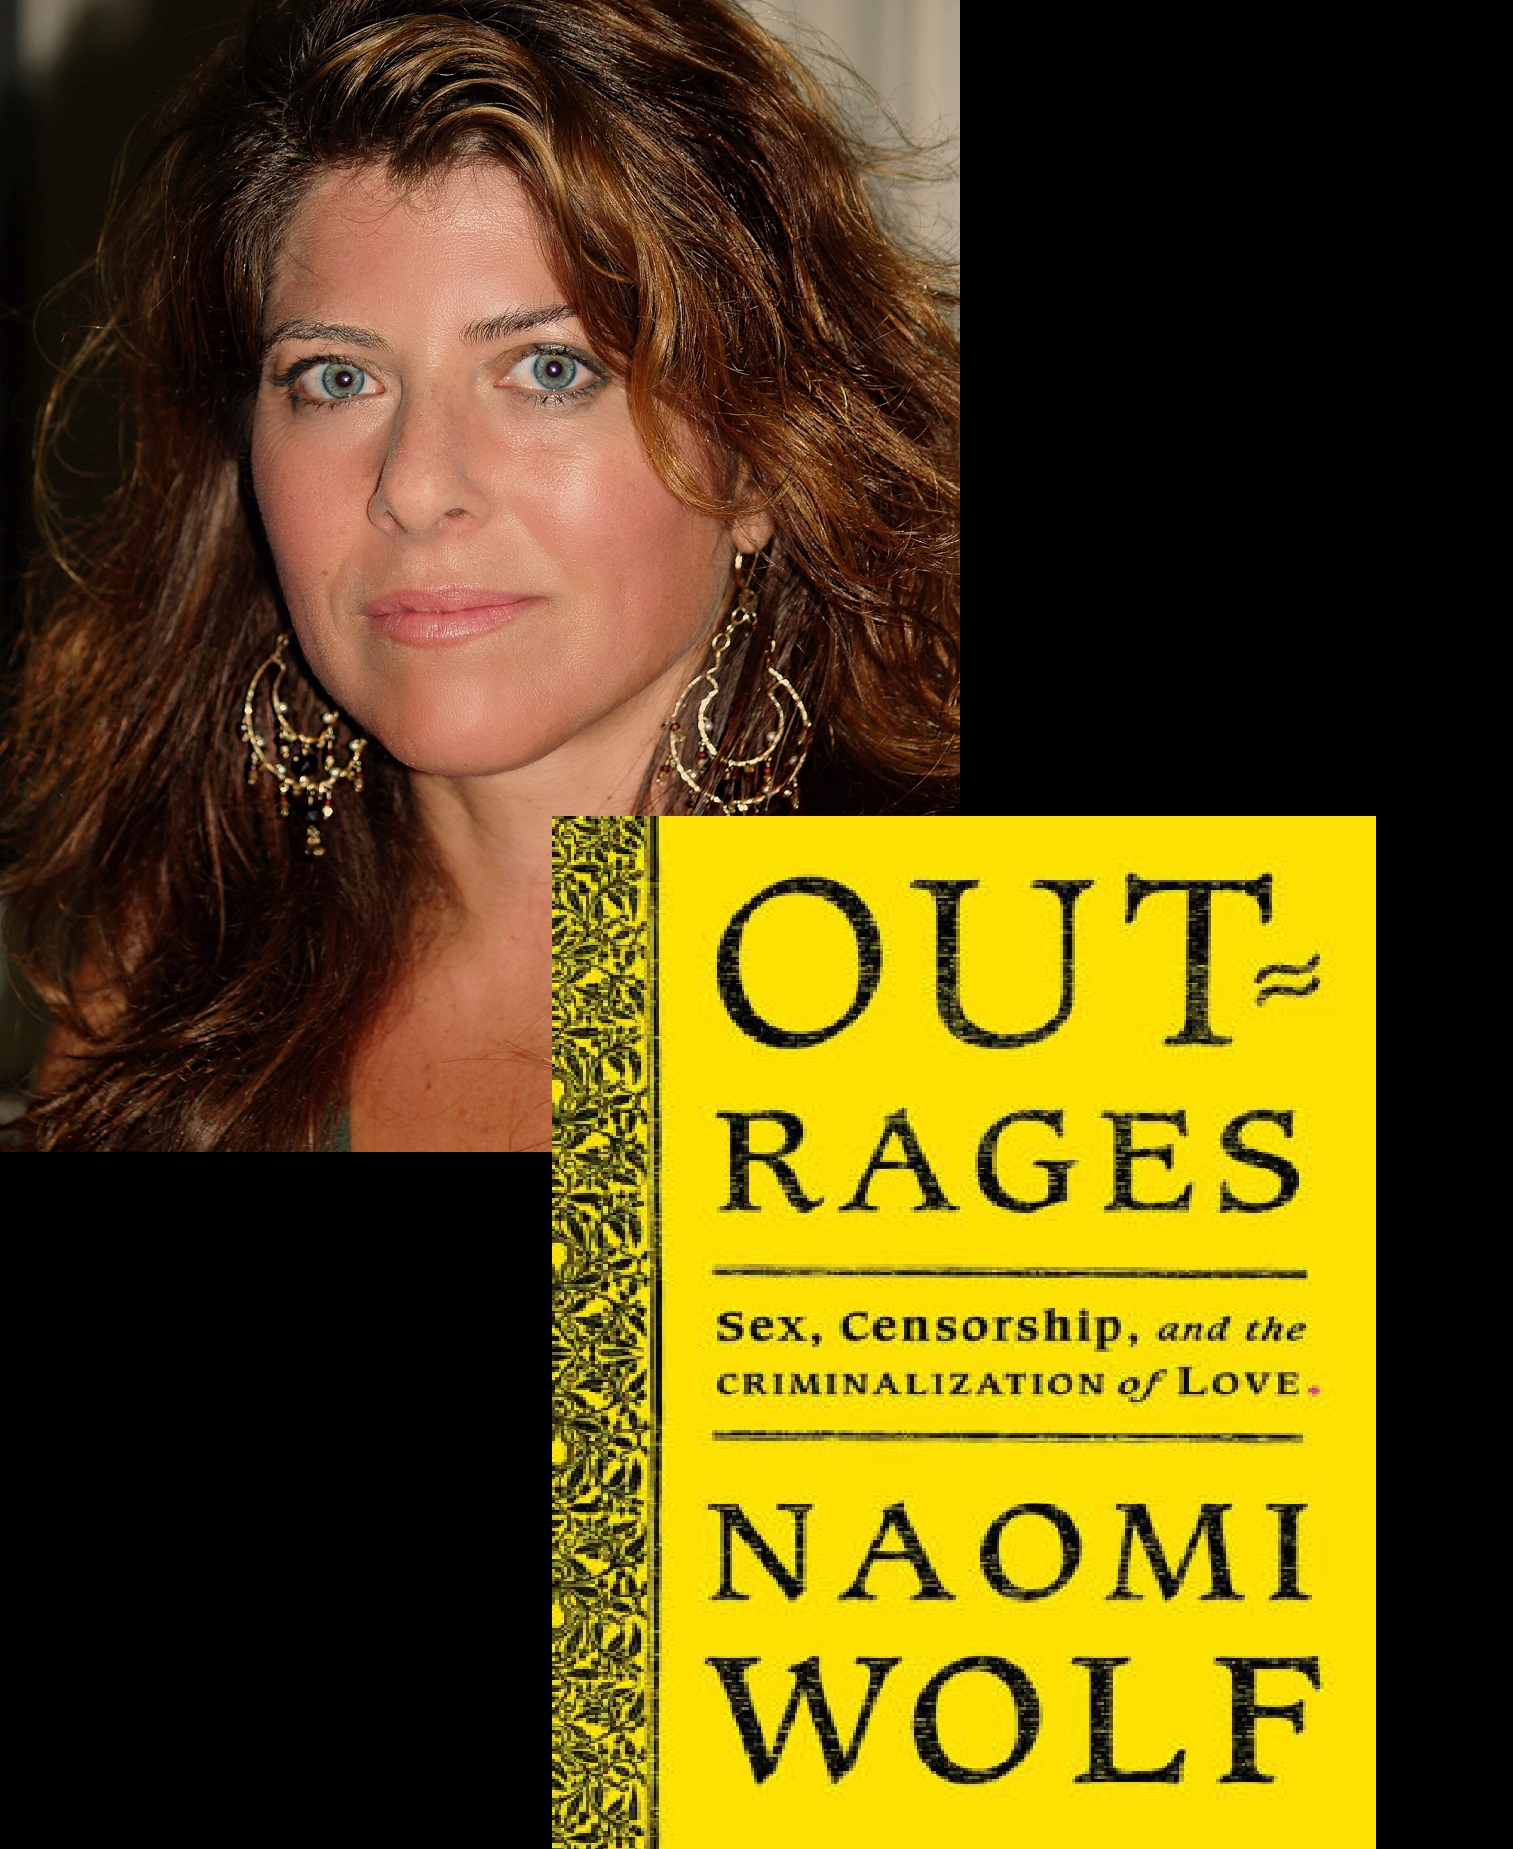 Naomi-Wikf-Outrages-Book-Disaster.jpg